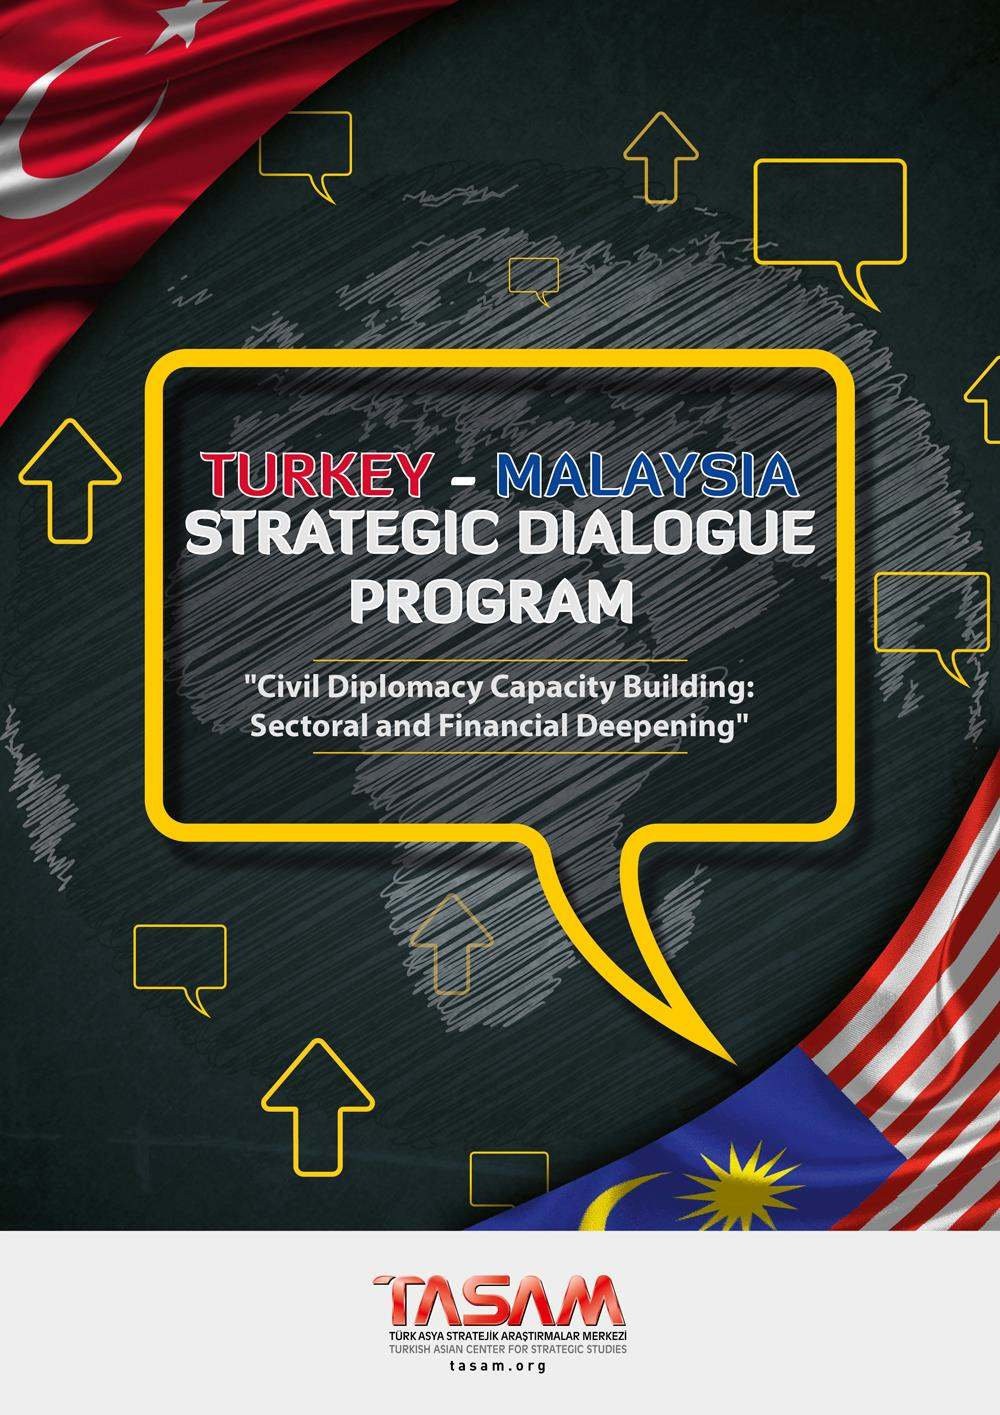 Turkey - Malaysia Strategic Dialogue Program